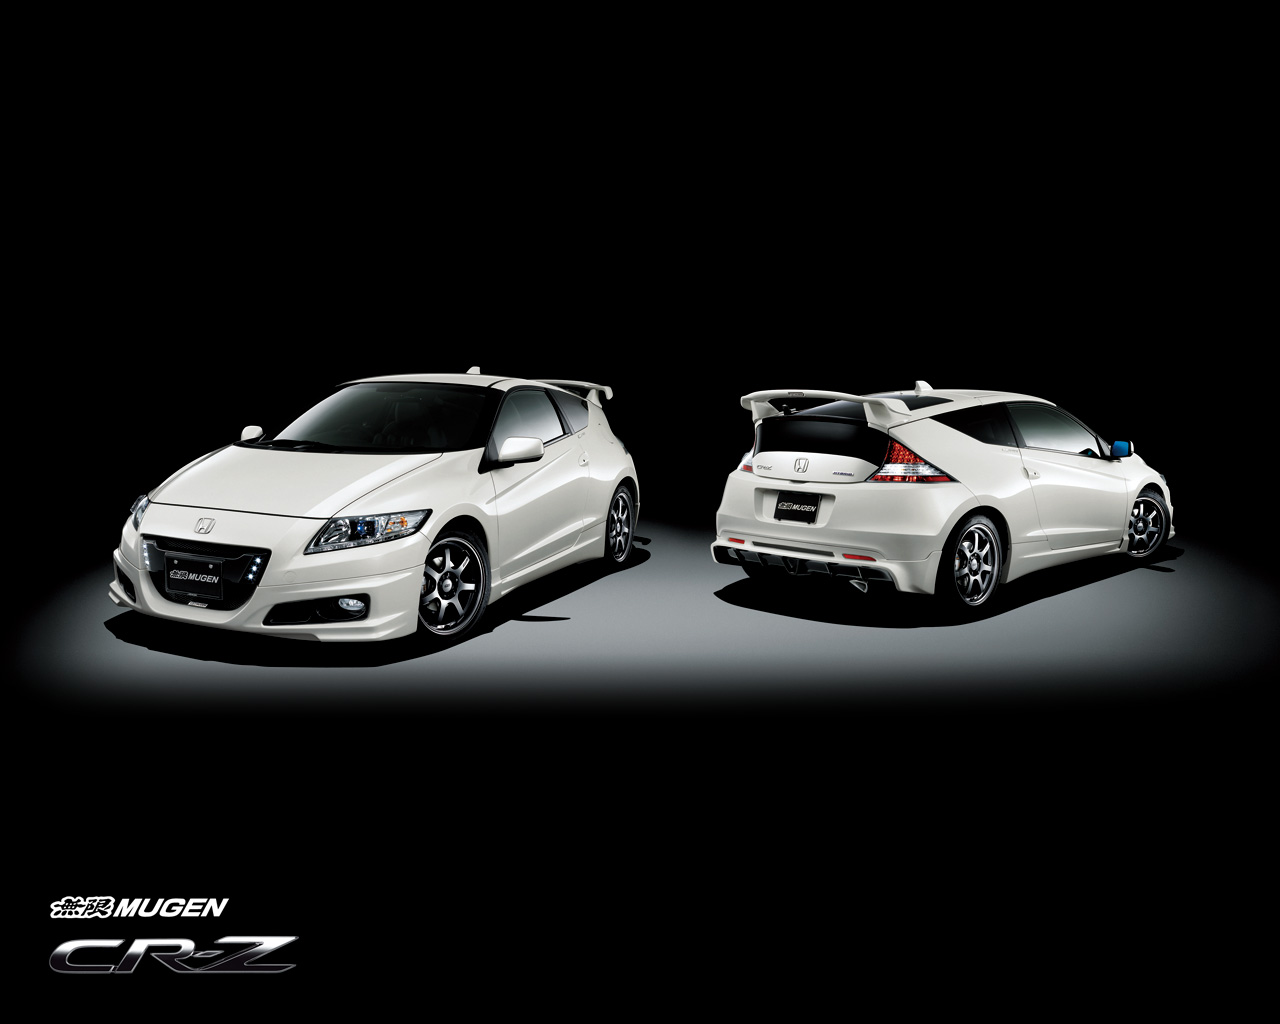 Honda CR-Z Mugen: Hybrid Advanced Performance